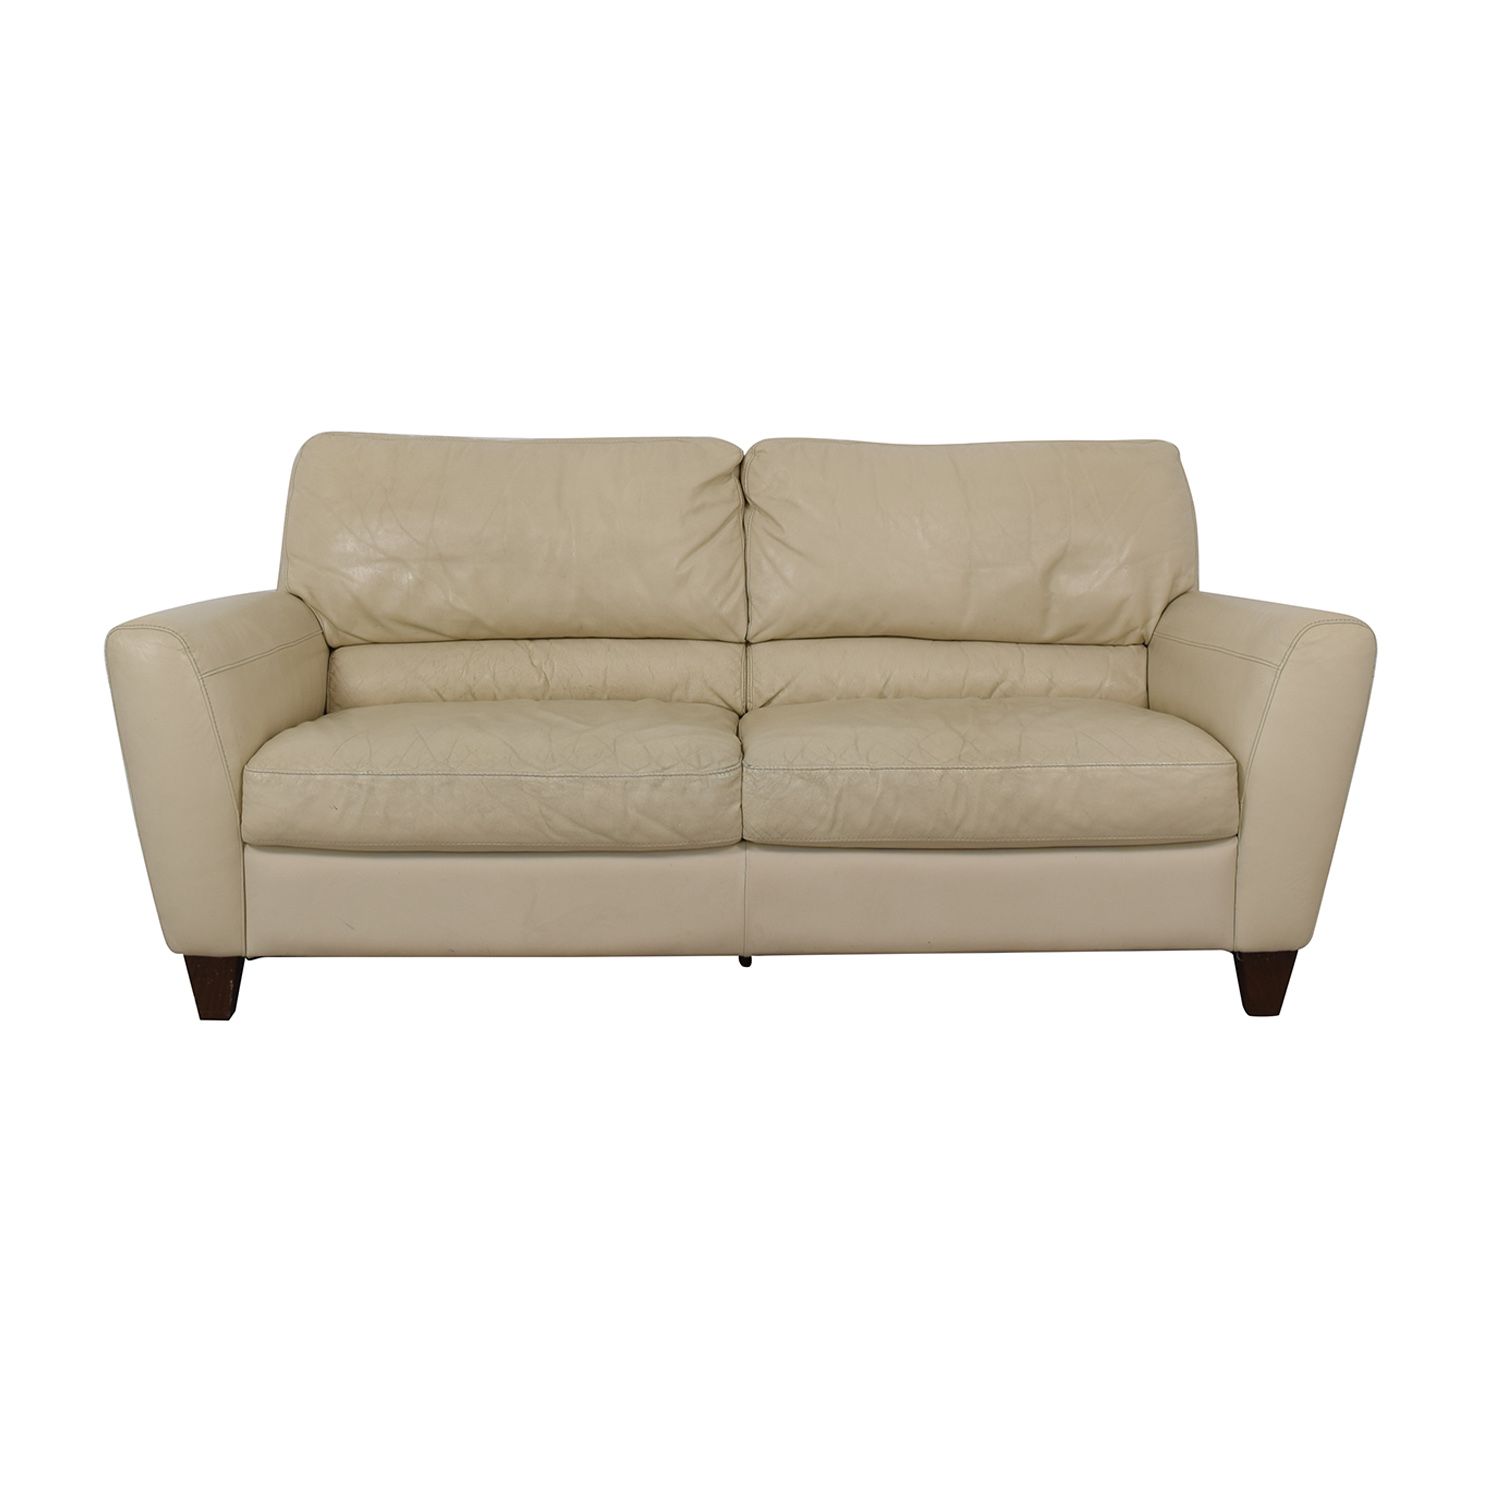 Macy's Macy's White Two-Cushion Sofa Sofas